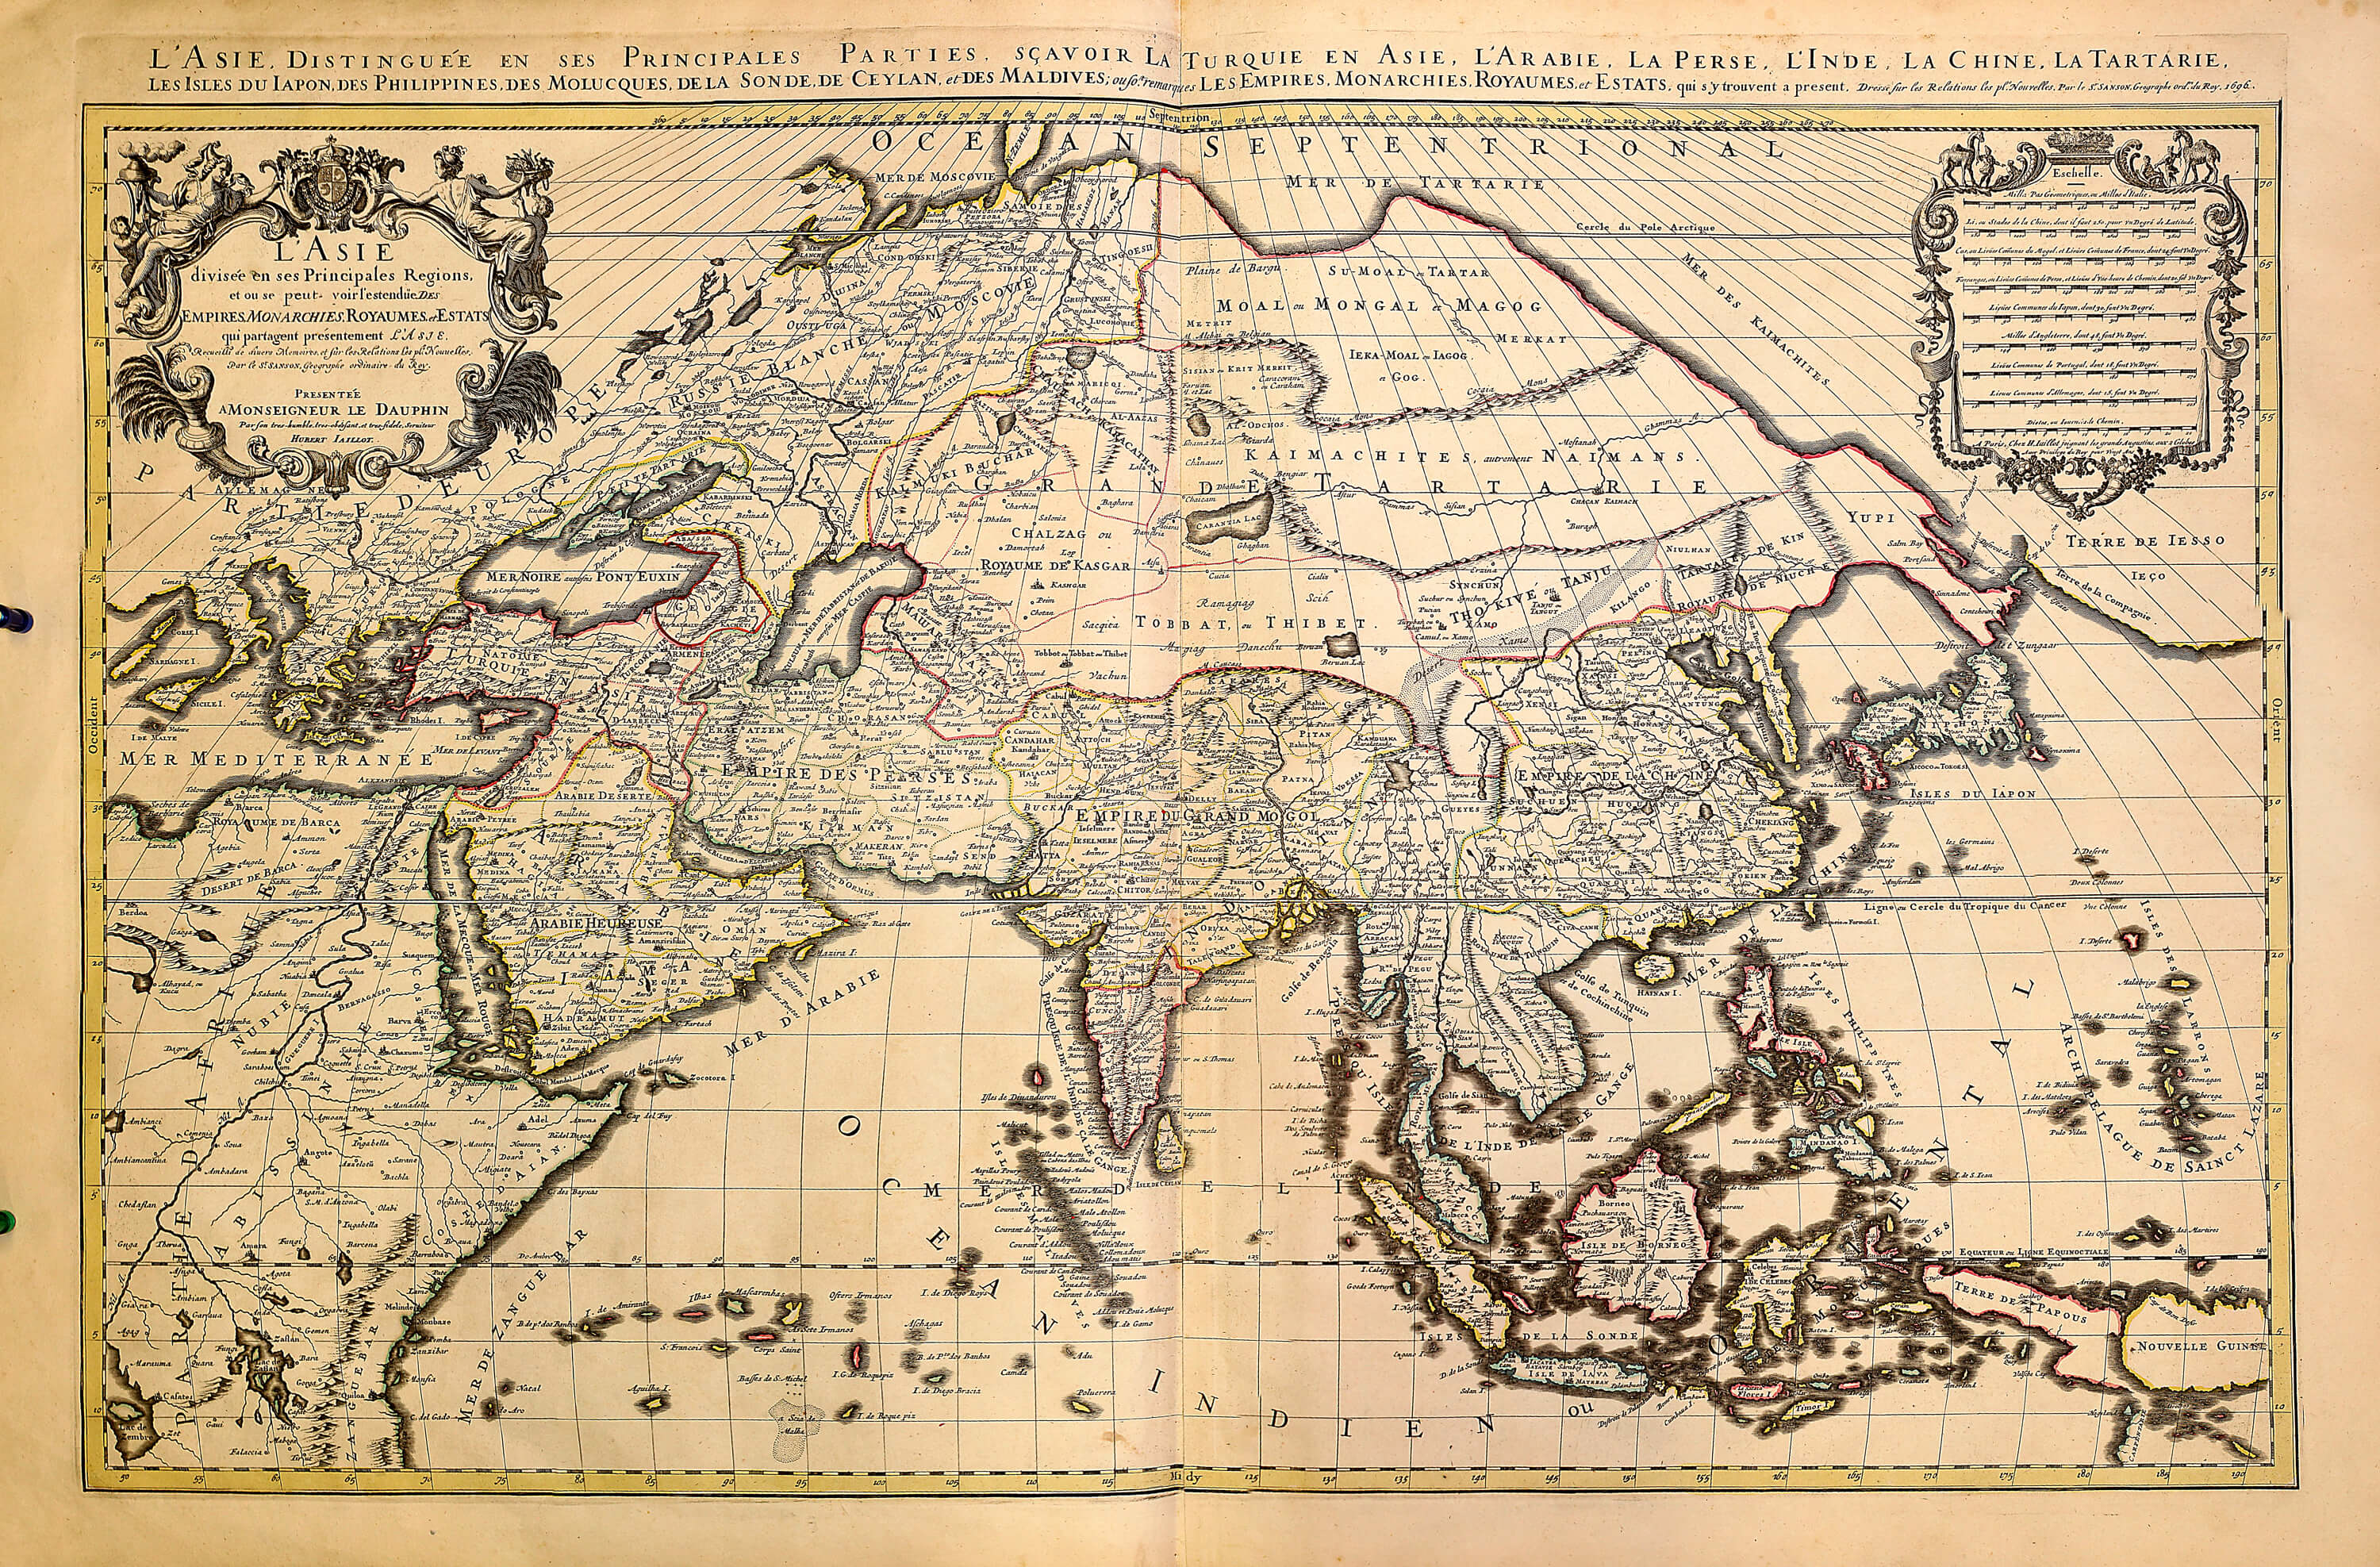 World atlas by huberjaillot a 1 72 1696 sheets 3 101 l brown a 1 72 07 asia gumiabroncs Choice Image